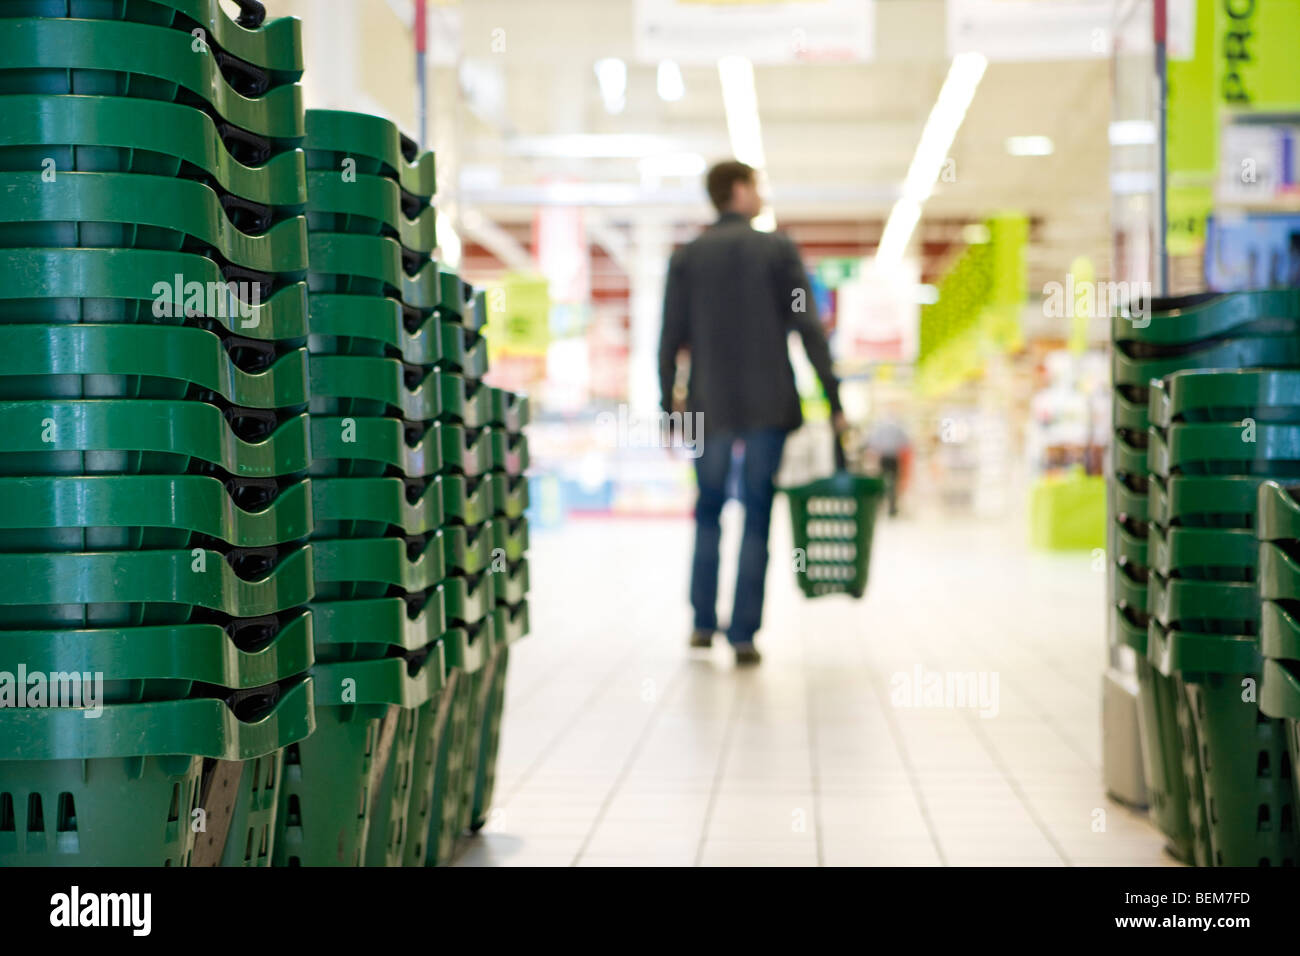 Shopping baskets stacked in rows, shopper in background - Stock Image